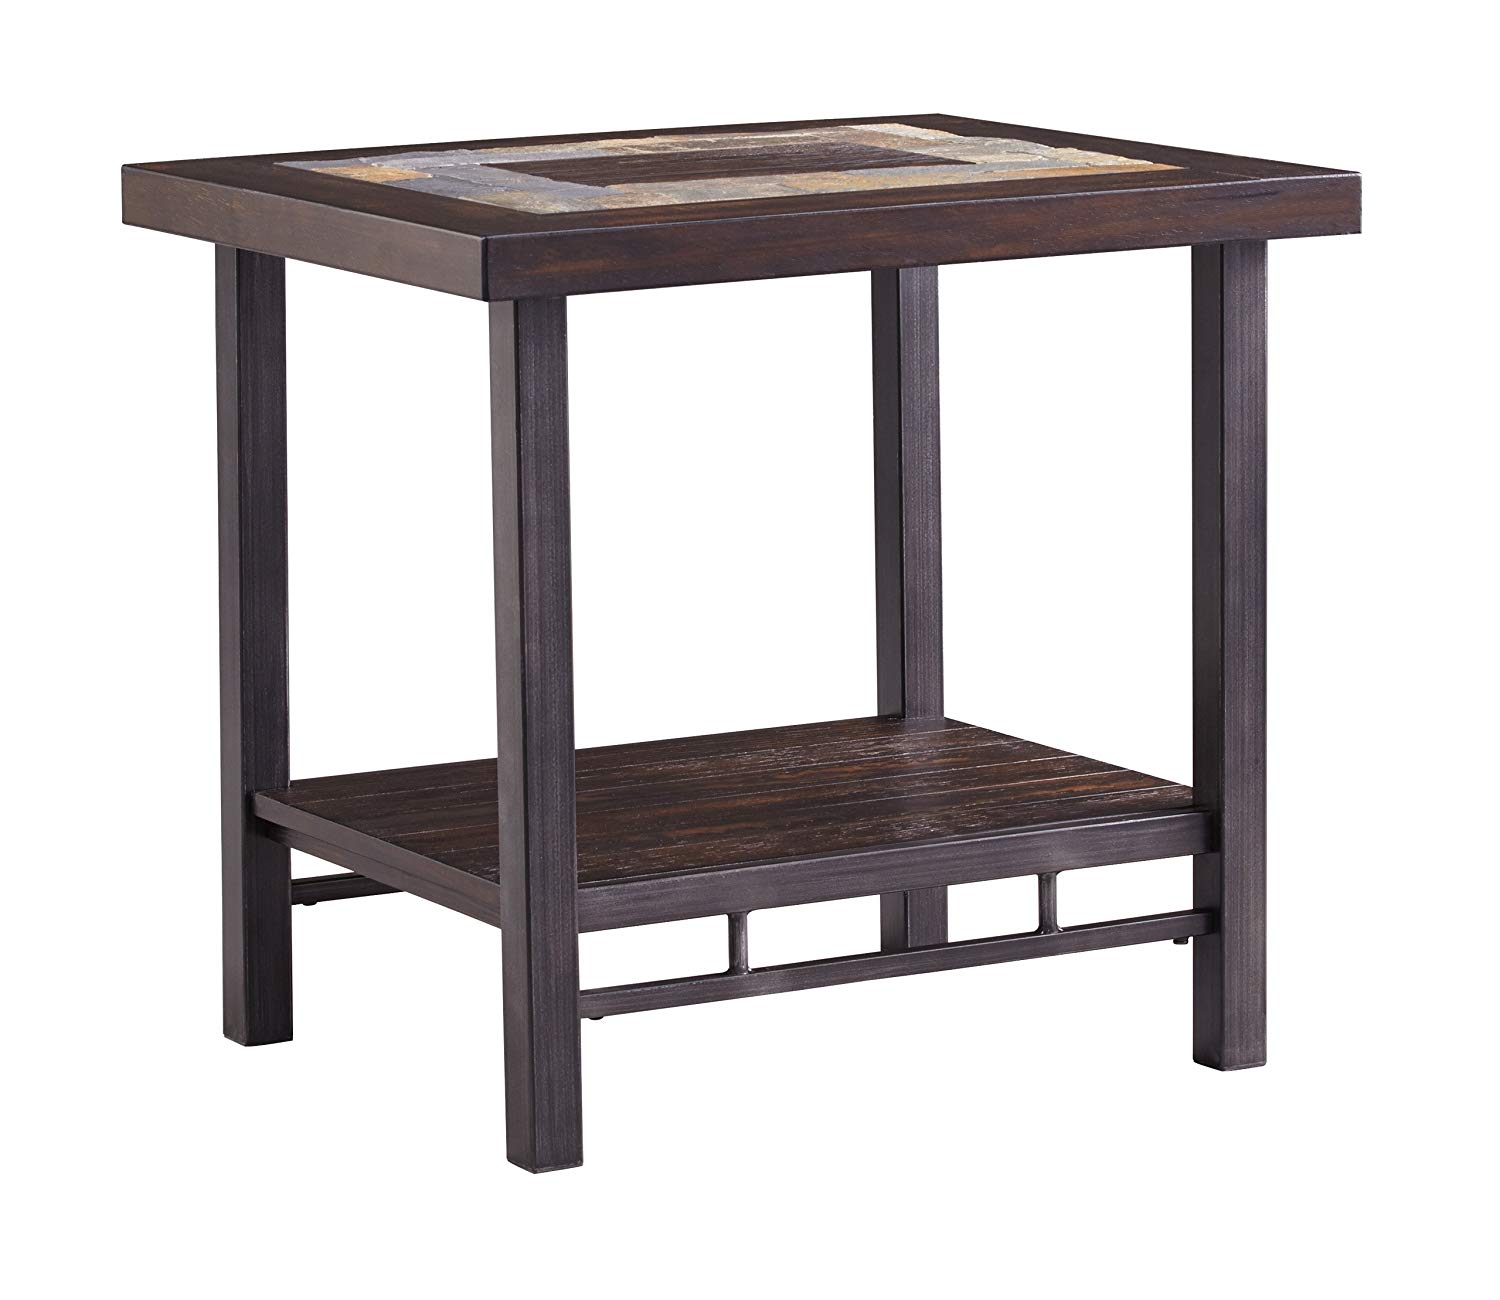 ashley furniture signature design gallivan casual two small rectangular accent table tone end multicolored kitchen dining teak patio bunnings wicker ikea childrens storage cubes